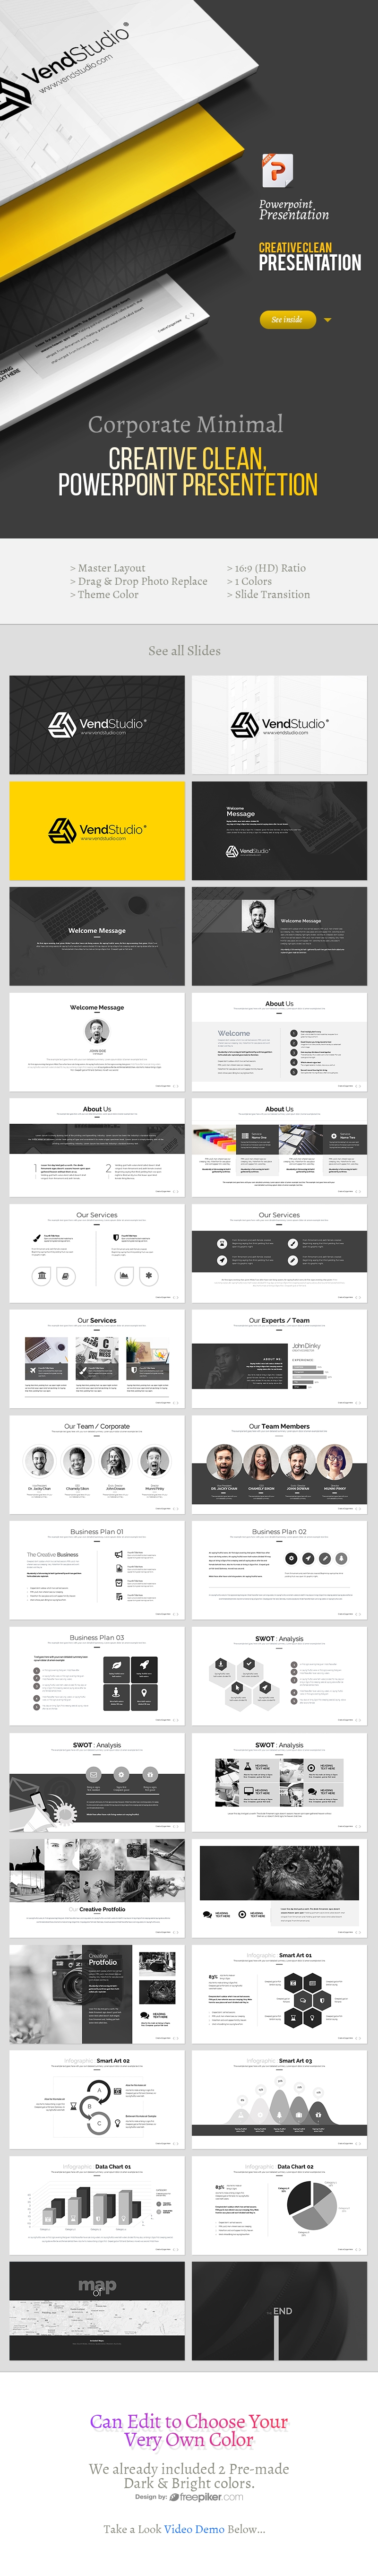 Black White Powerpoint Template